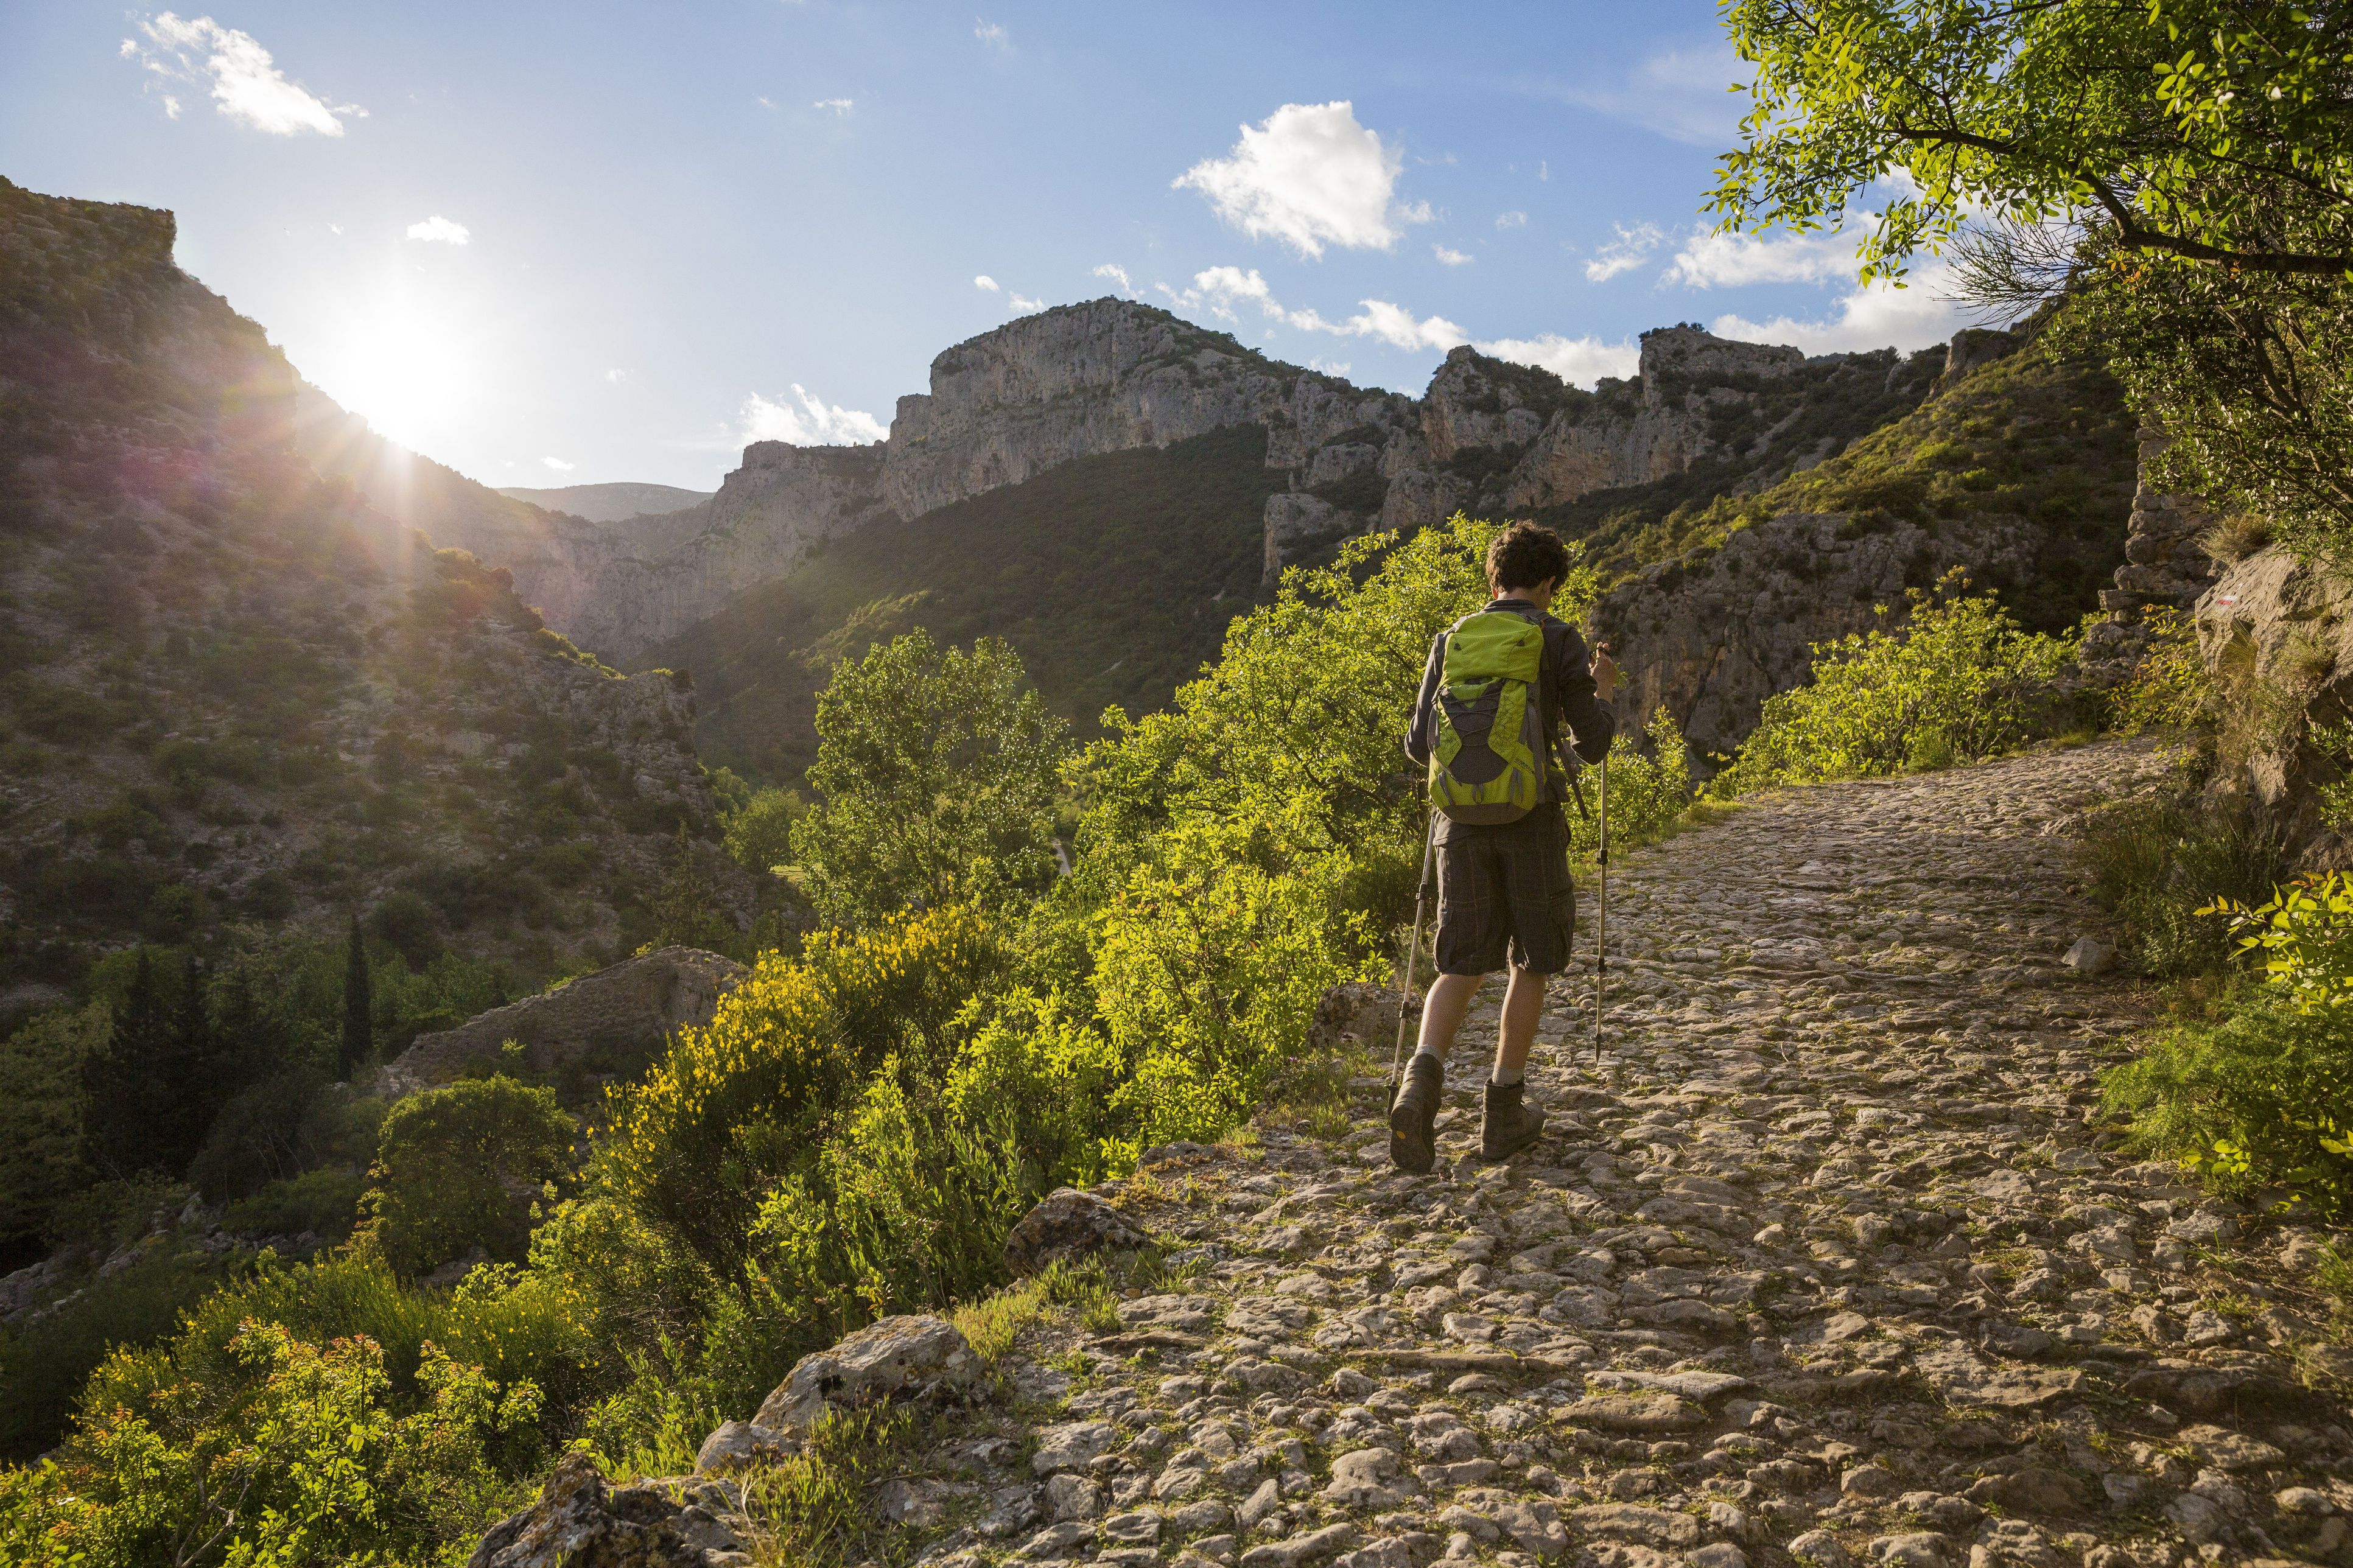 France, Herault, Saint Guilhem Le Desert, walker on the Via Tolosana on the Route of Compostela with a view of Max Negre's cliffs and the Cirque de l'Infernet